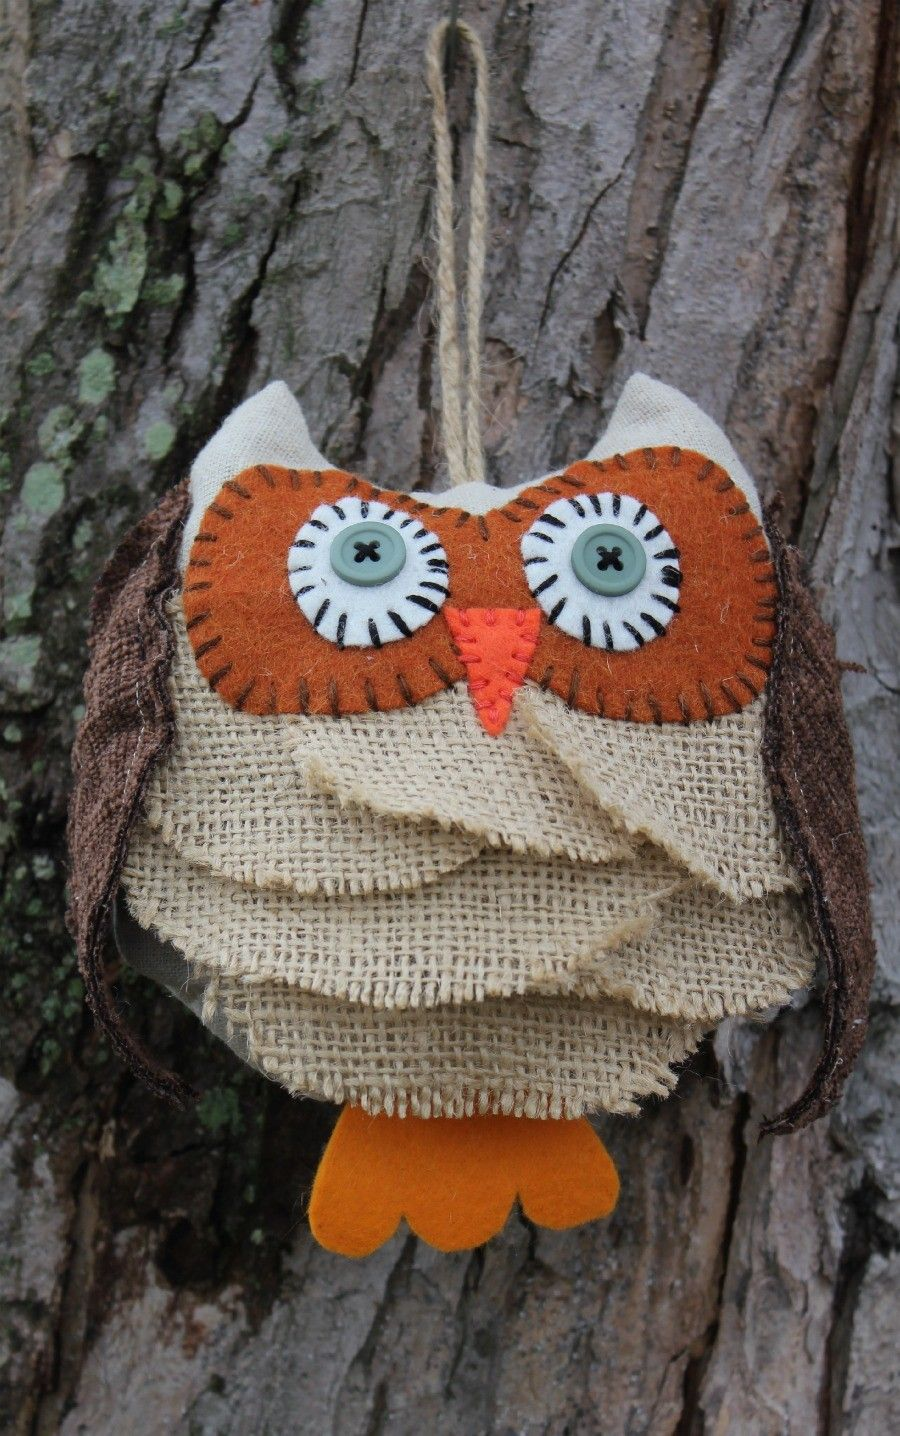 Burlap bird ornaments - Burlap Owl Ornament Rustic Bird